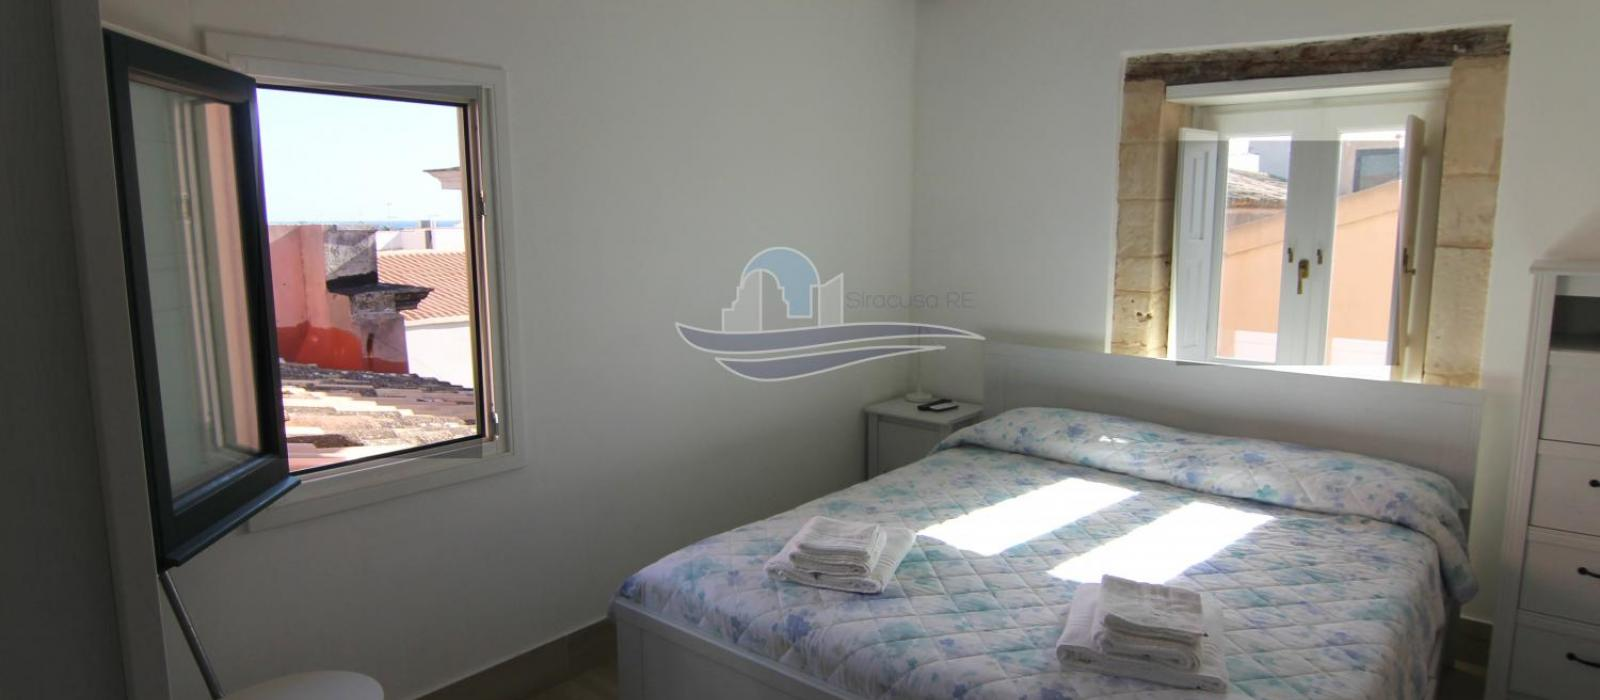 TWO-BEDROOM APARTMENT IN HISTORICAL PALACE